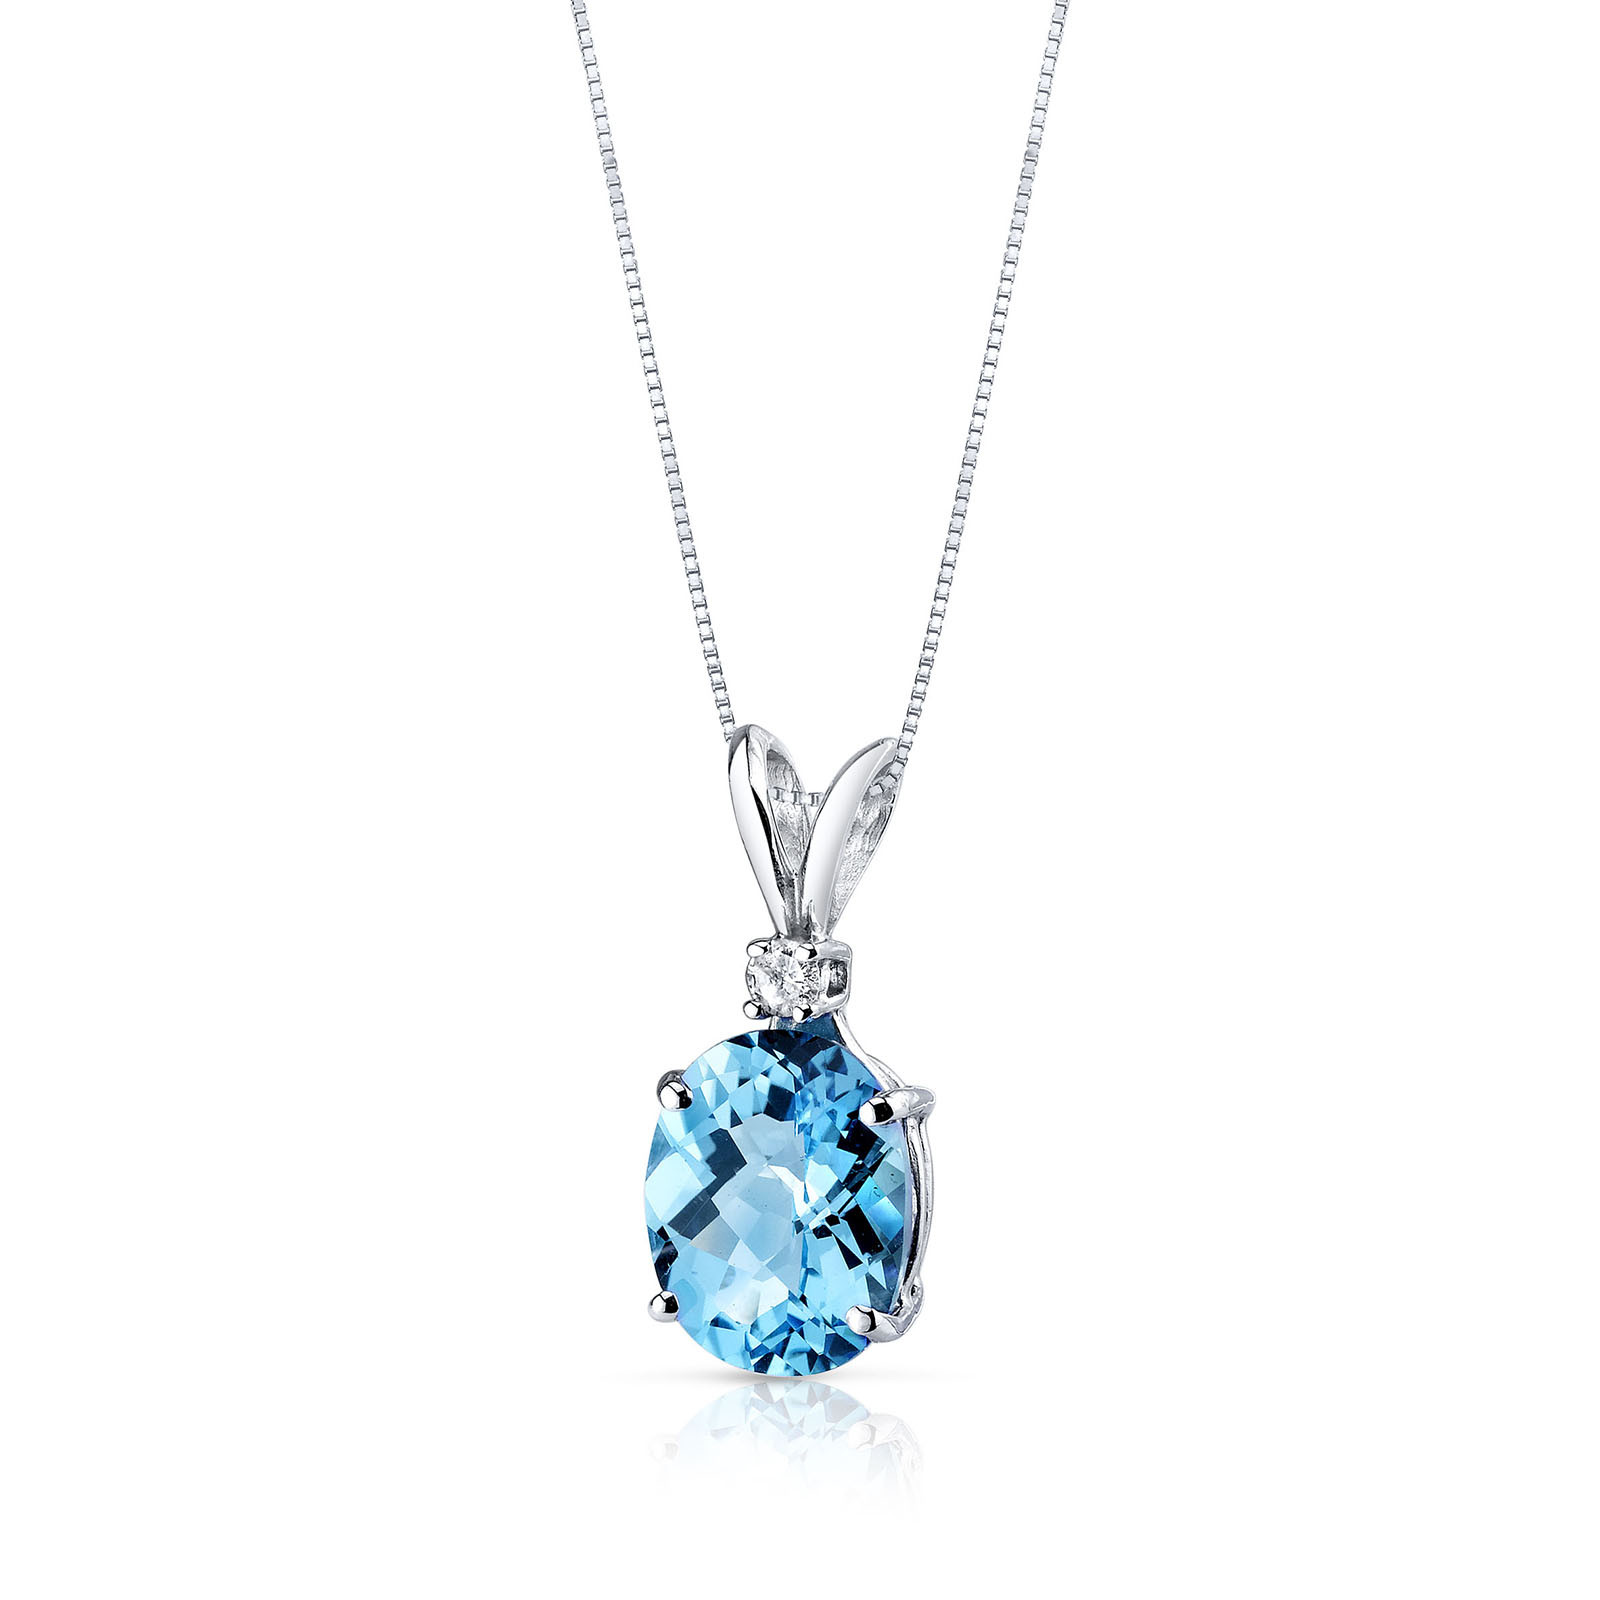 a47c8a575 Ruby & Oscar Swiss Blue Topaz & Diamond 9ct White Gold Pendant Necklace  with Silver Chain ...